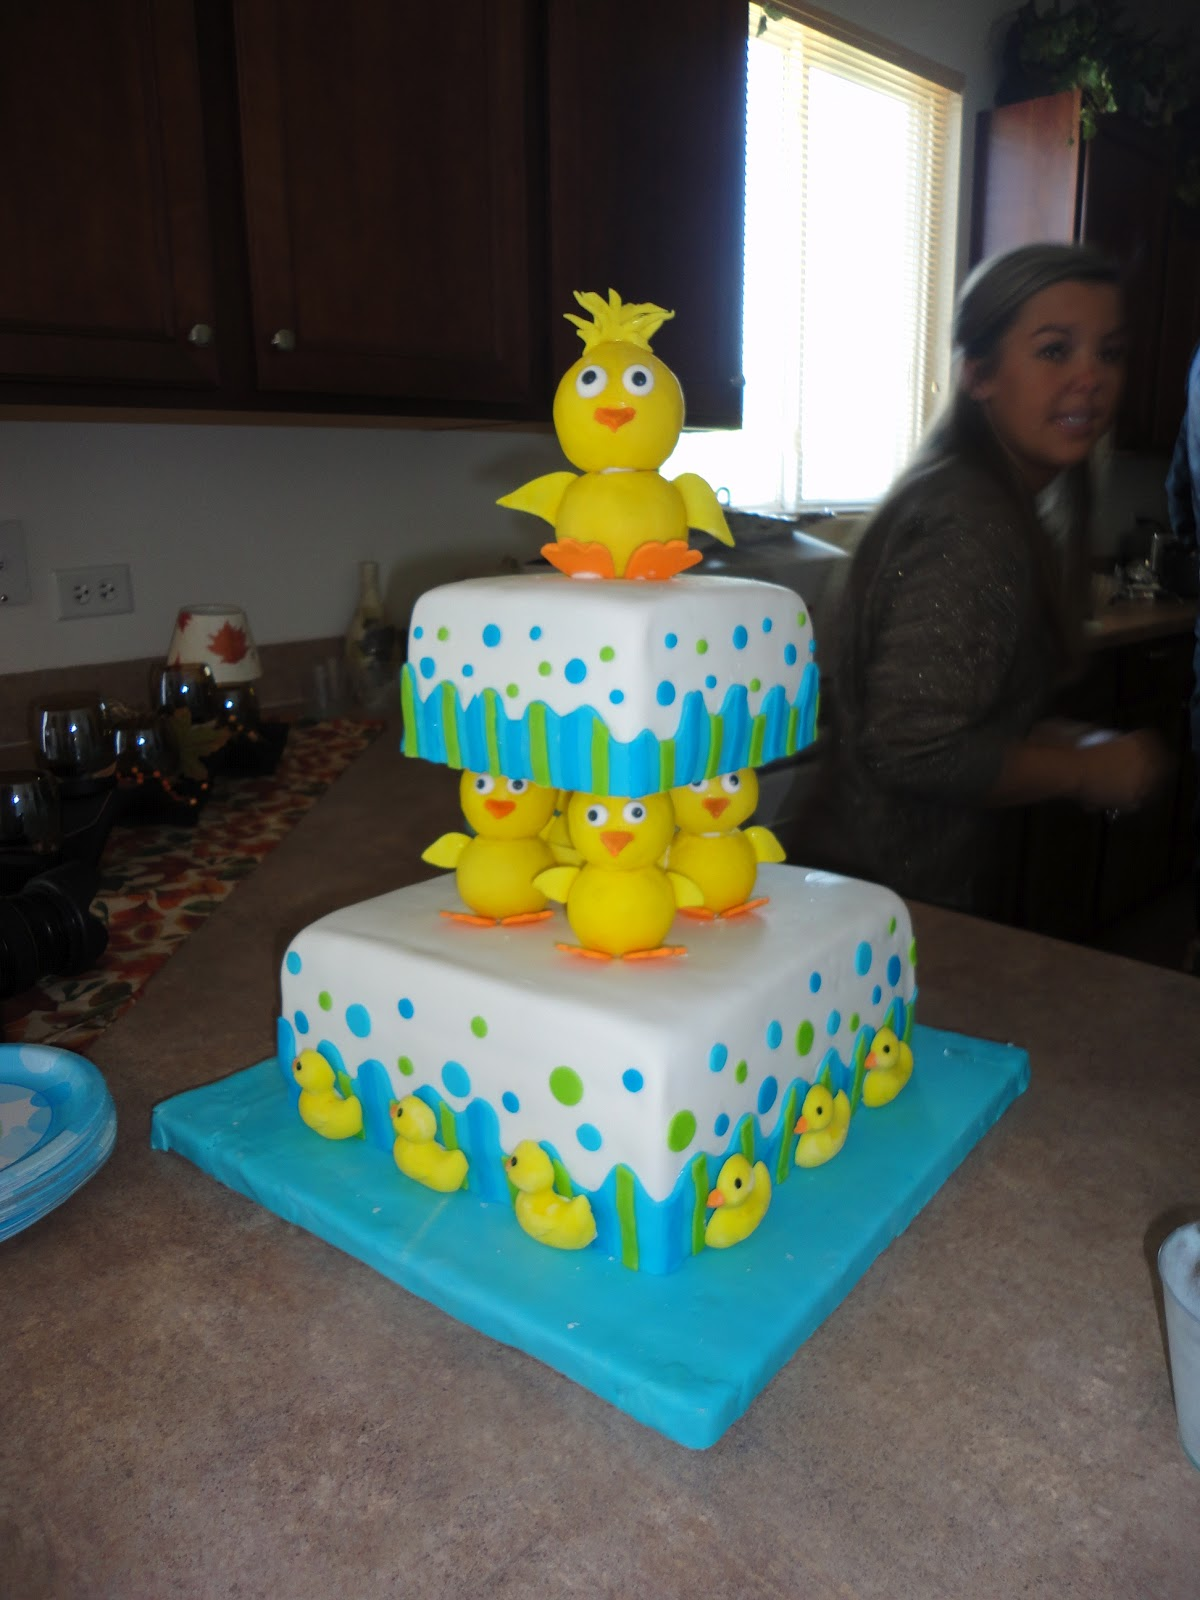 general splendour yellow ducks adorable baby shower